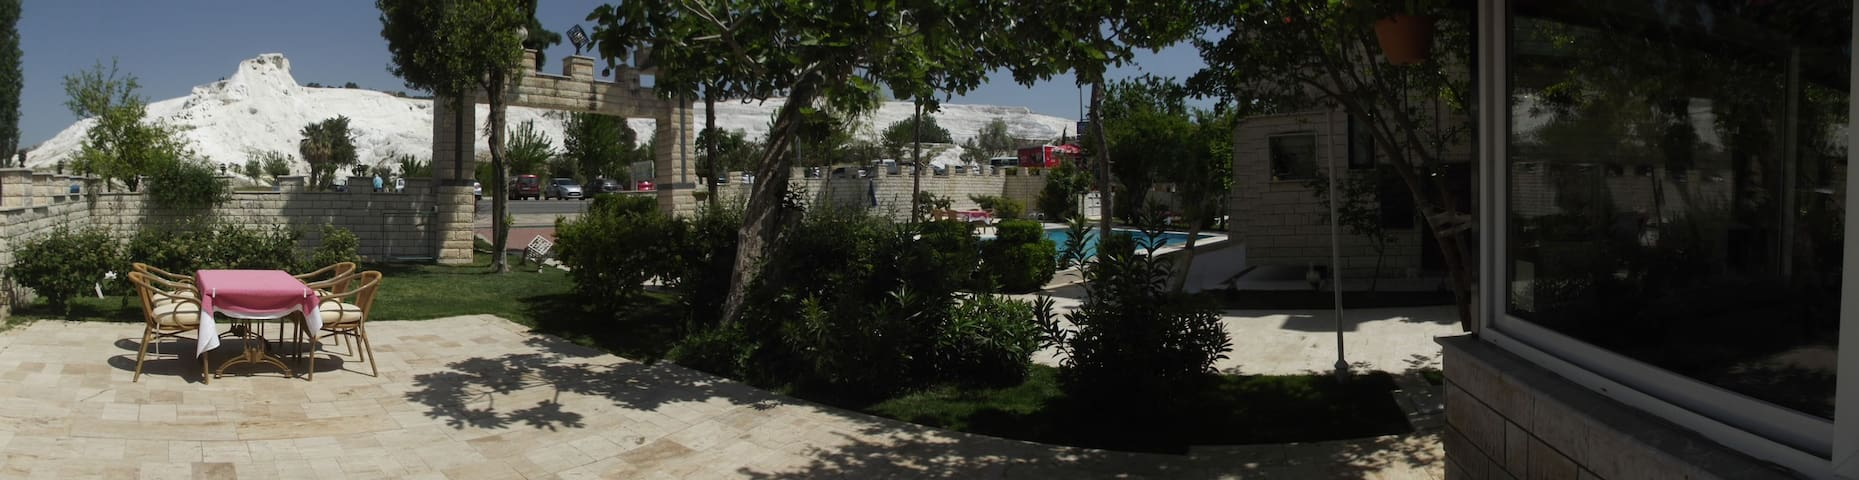 HOTEL HAL TUR TWN  ROOM(VIEW POINT HOTEL ) - Pamukkale - Bed & Breakfast